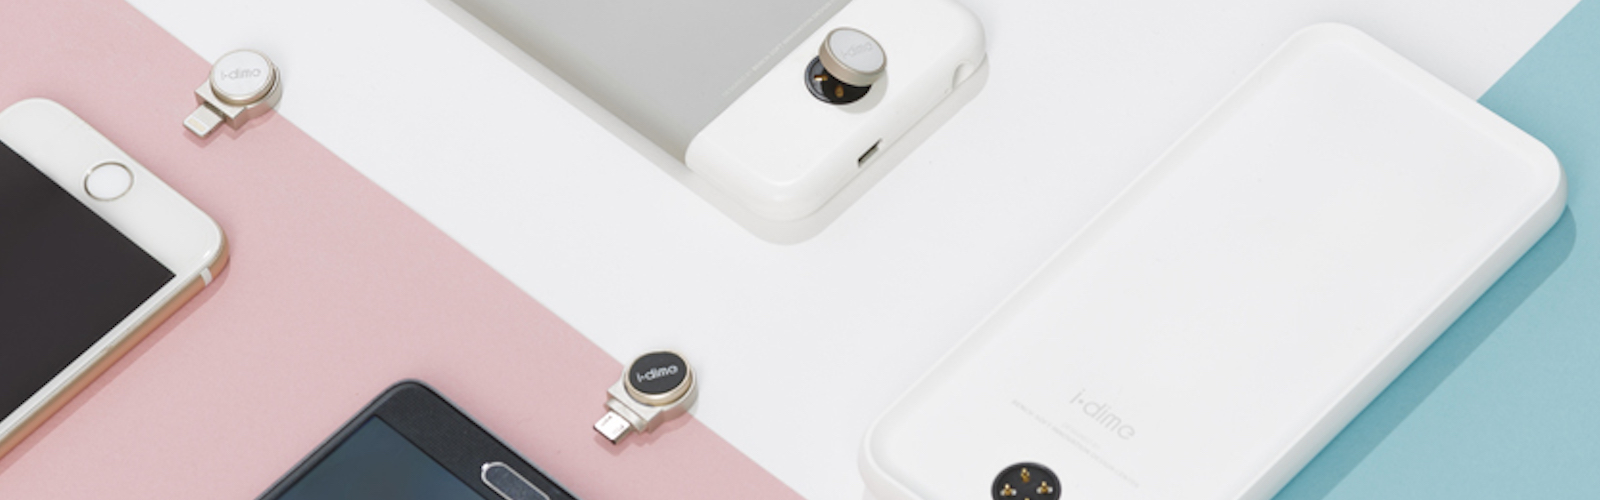 The Penny-Sized Idime Adds Serious Storage to Your iPhone